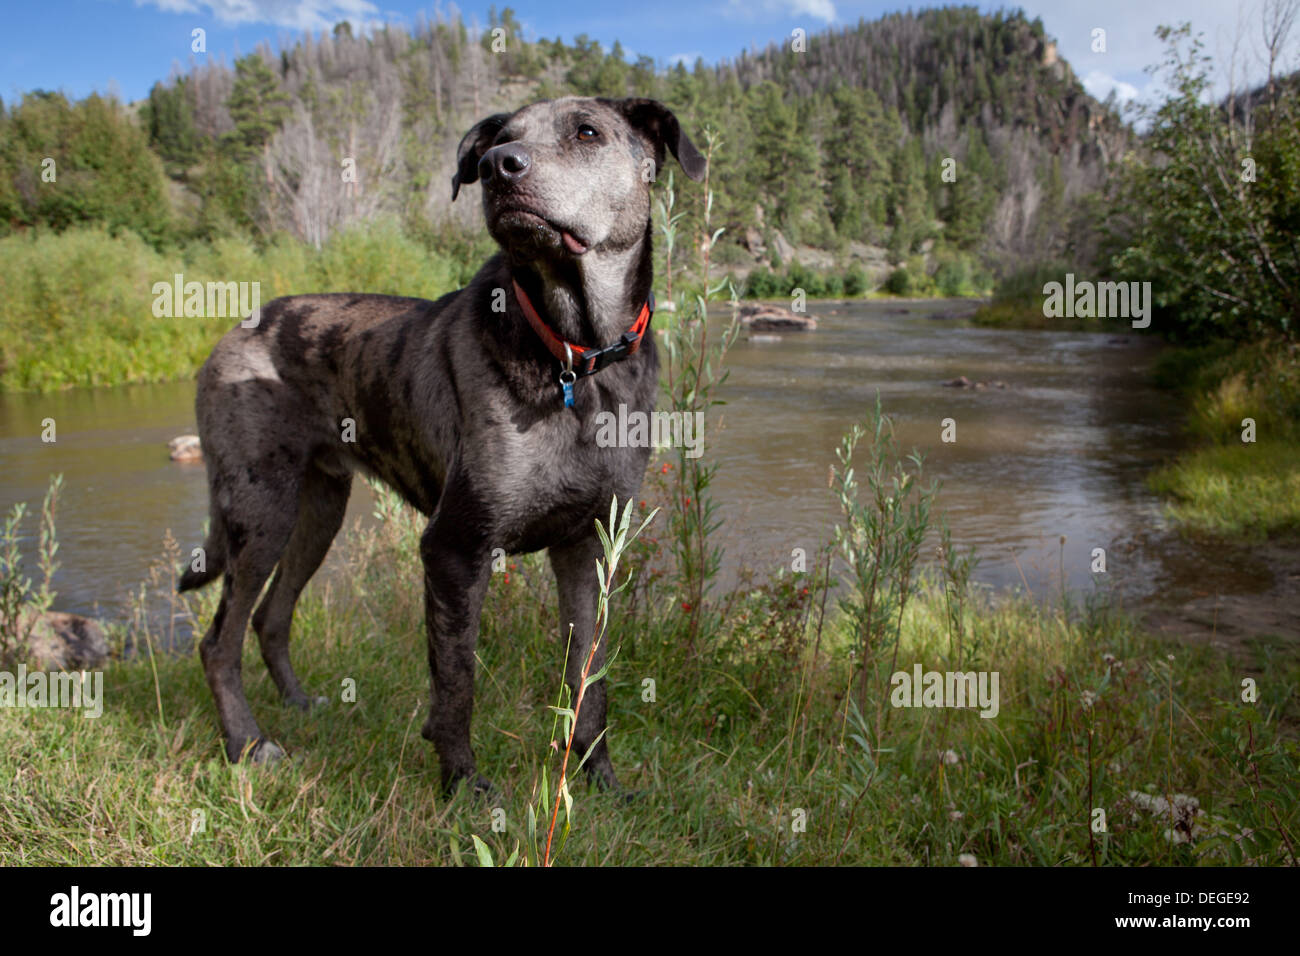 A Catahoula Leopard Dog stands in front of a scenic river. - Stock Image